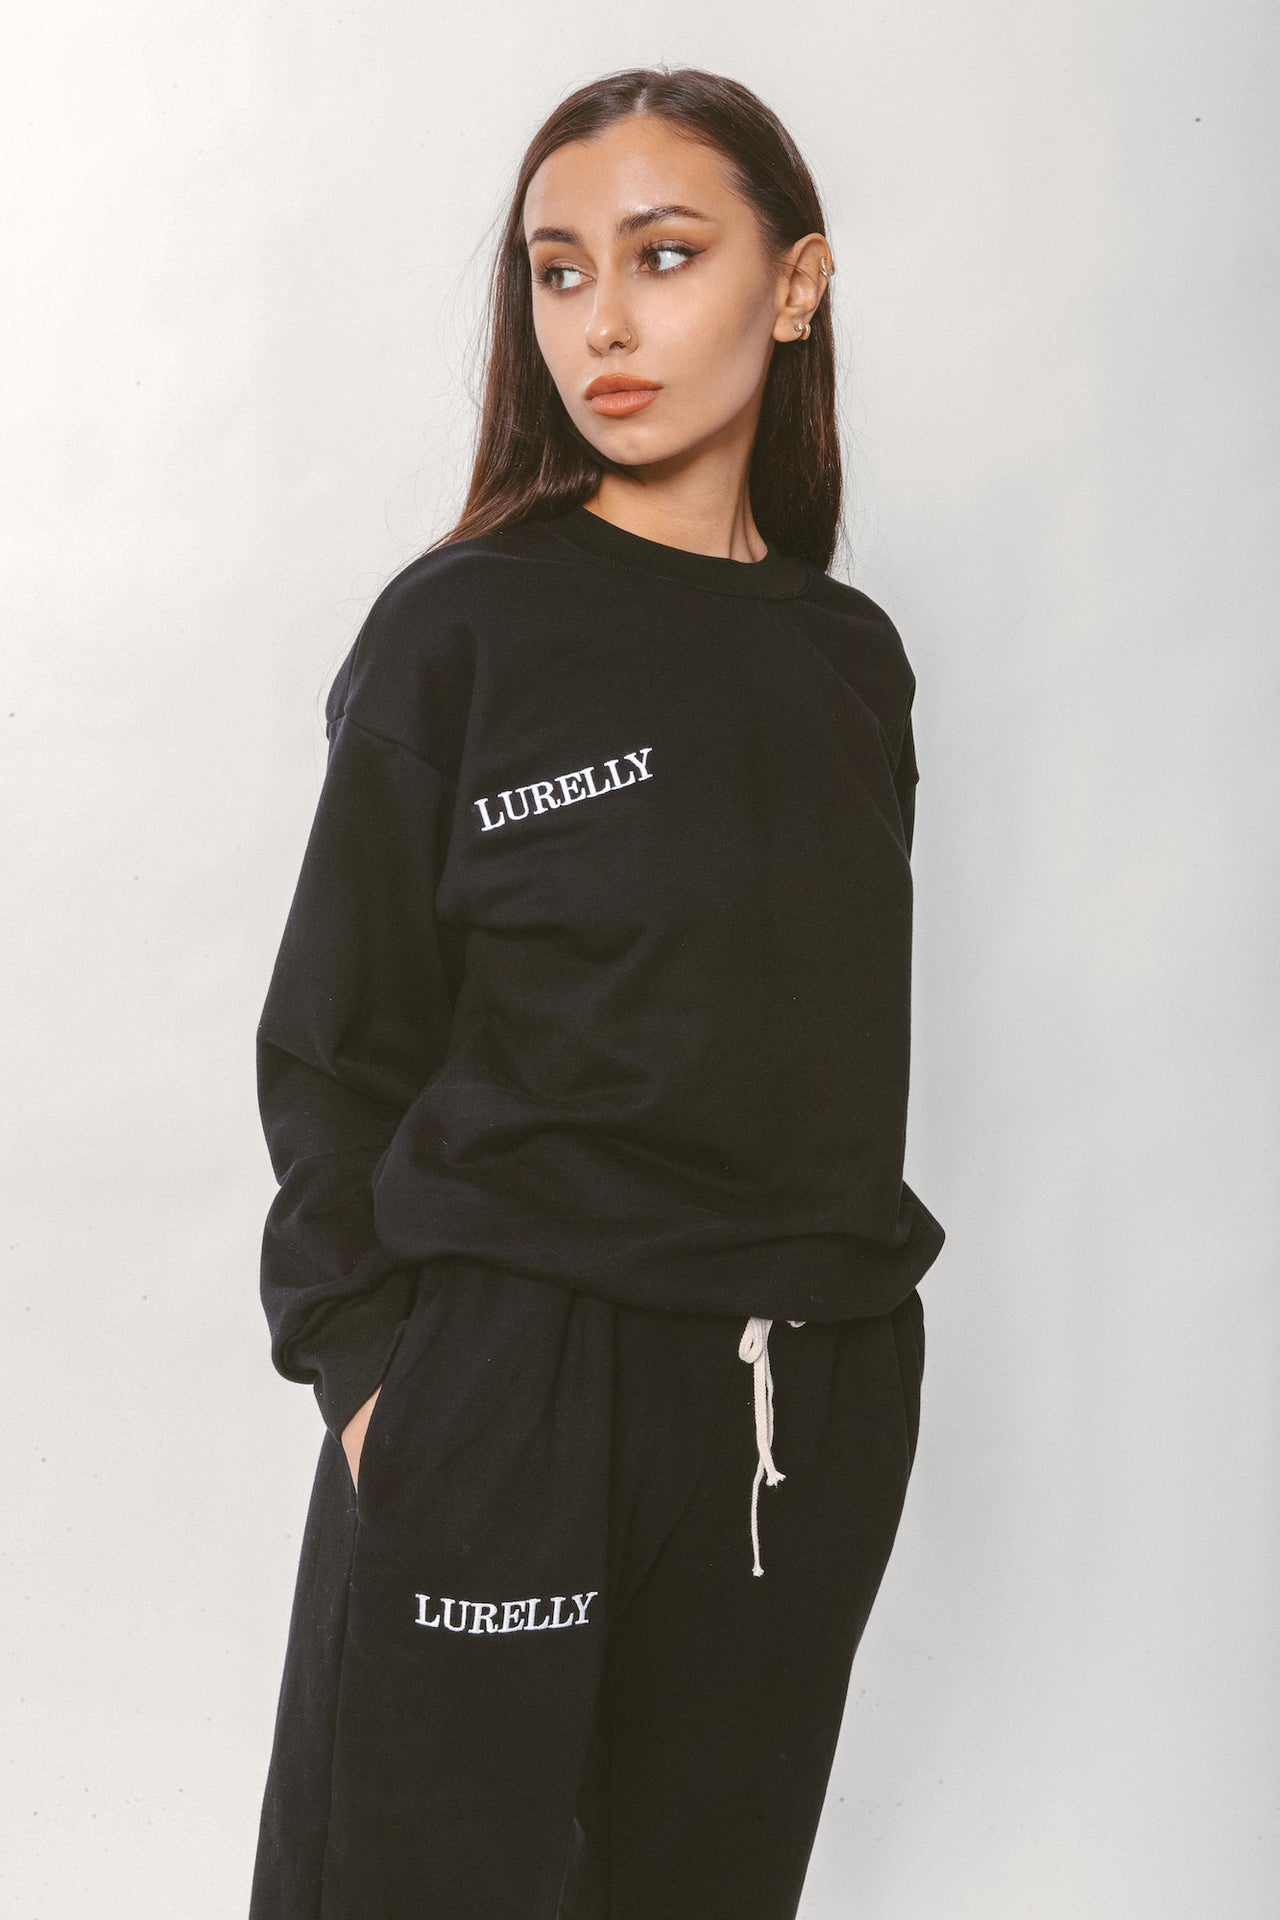 LURELLY SWEATPANTS - Lurelly